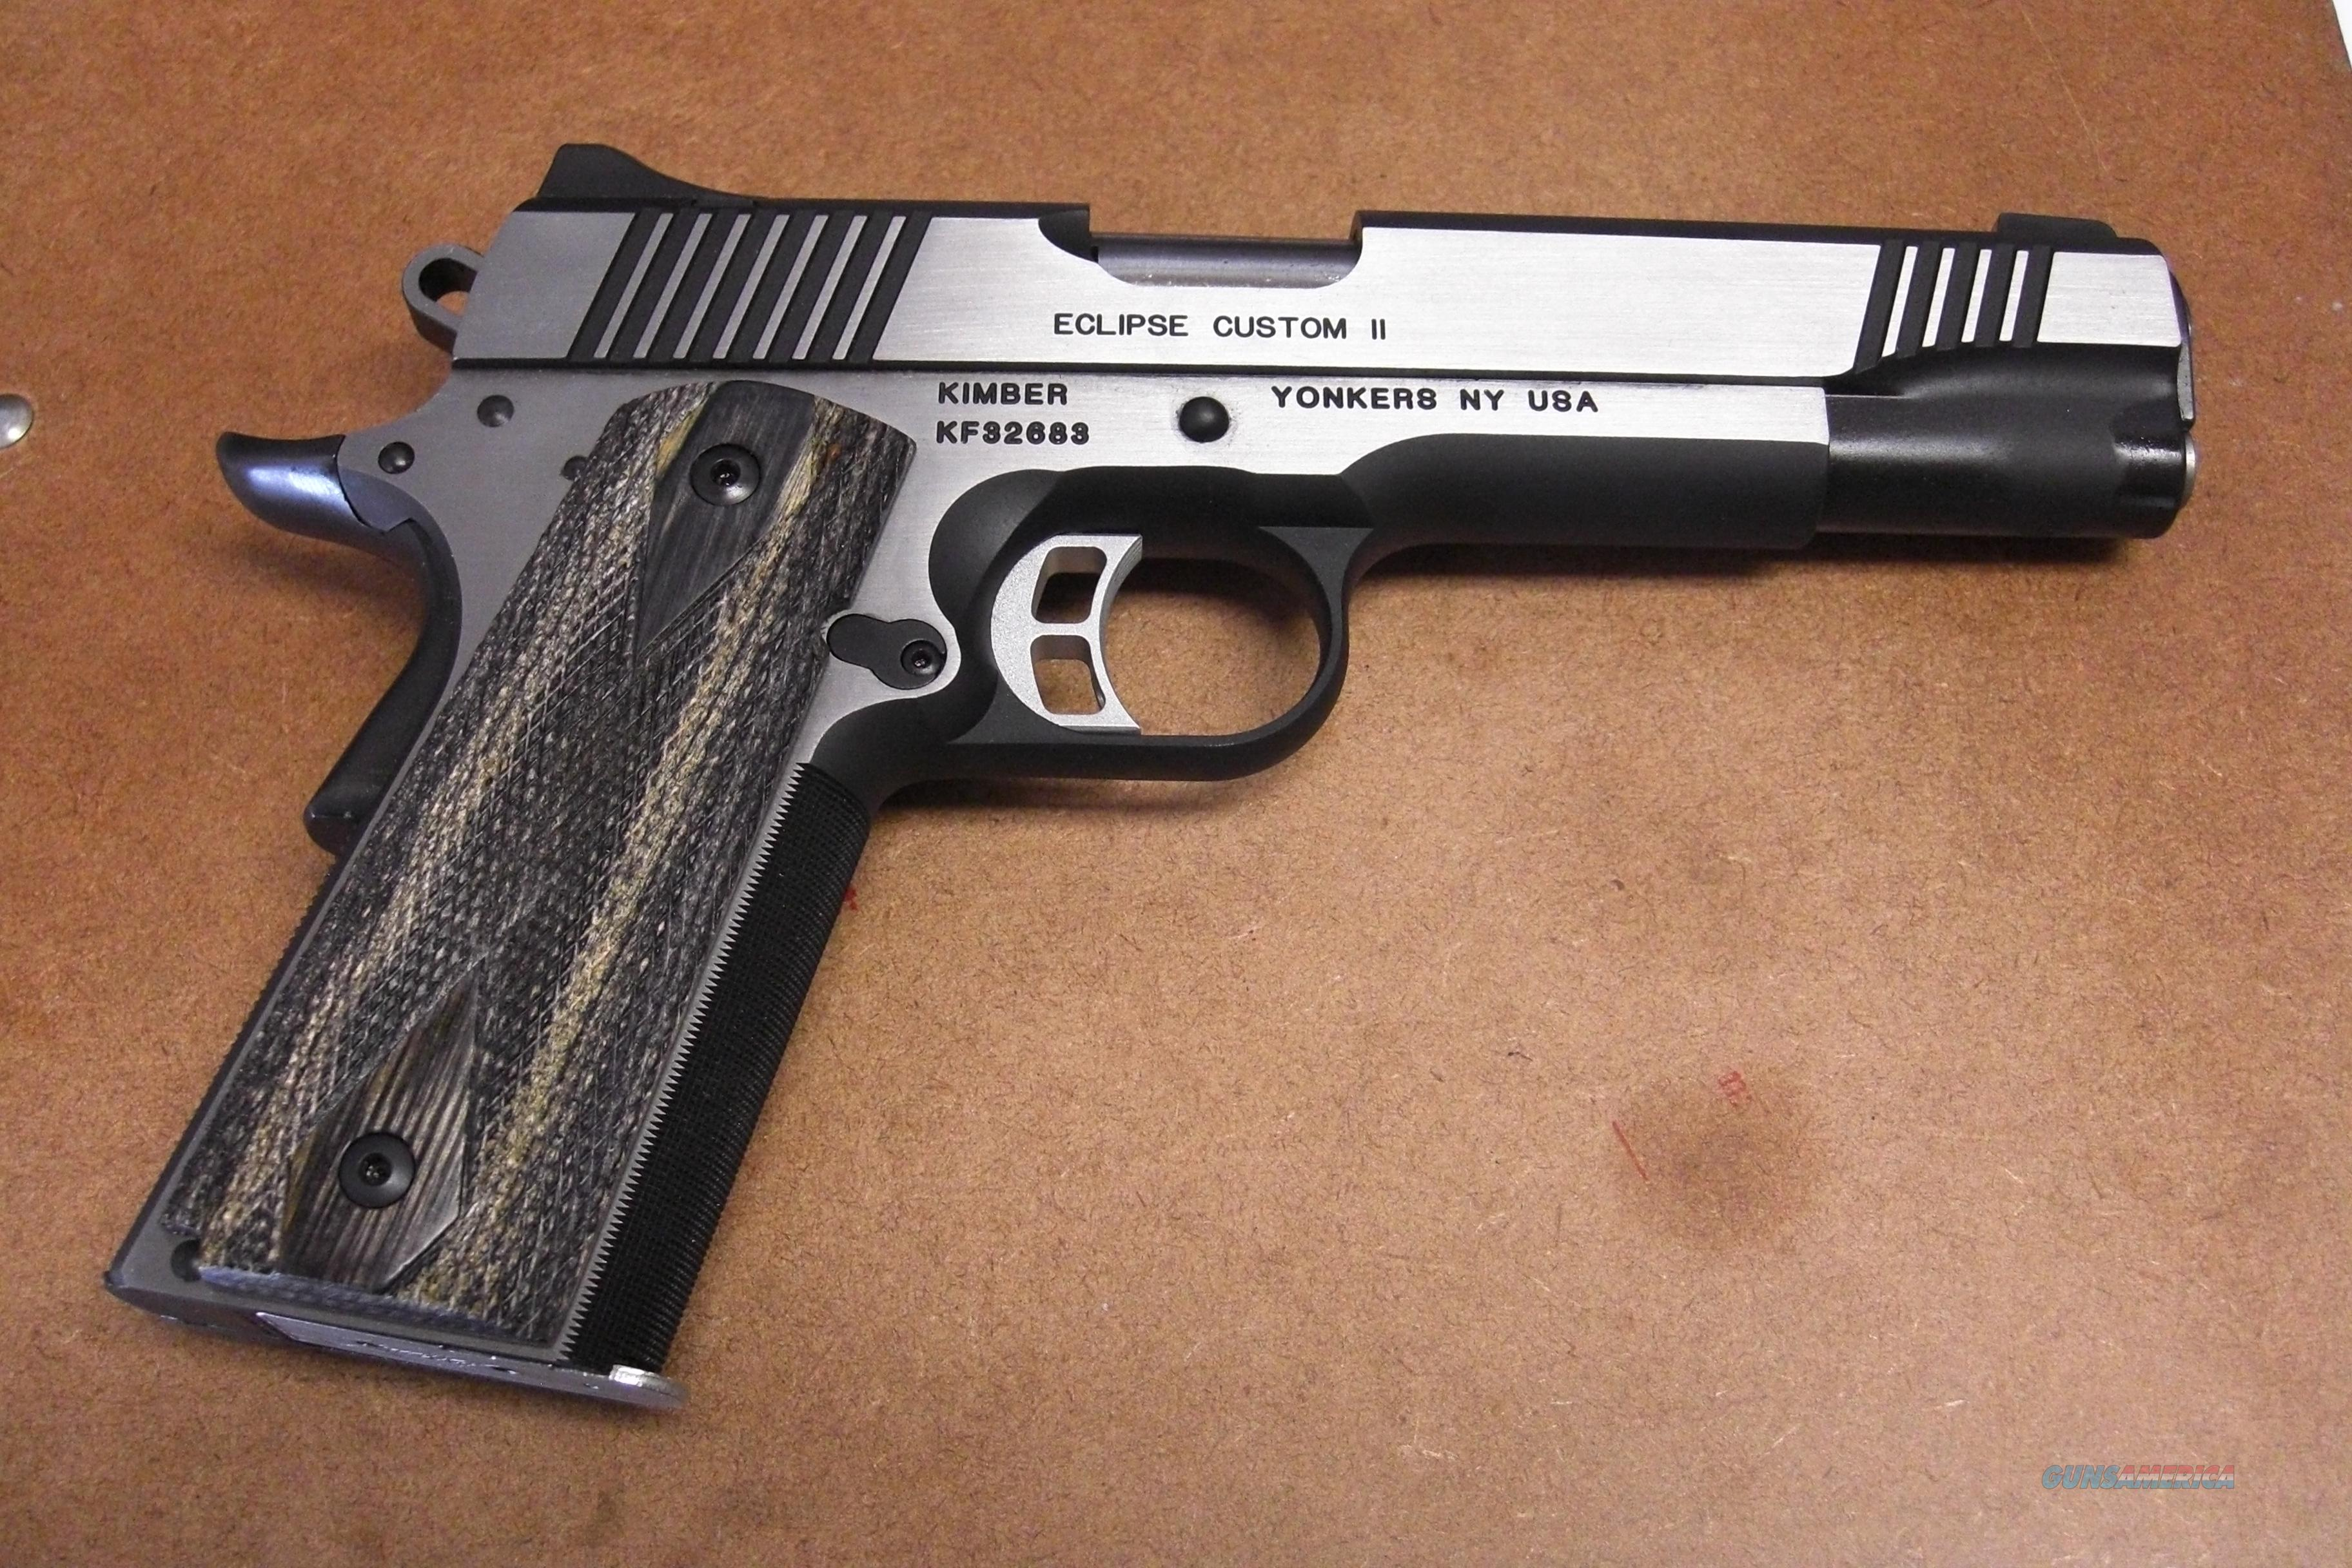 Eclipse Custom II  10 mm  w/stainless accents  Guns > Pistols > Kimber of America Pistols